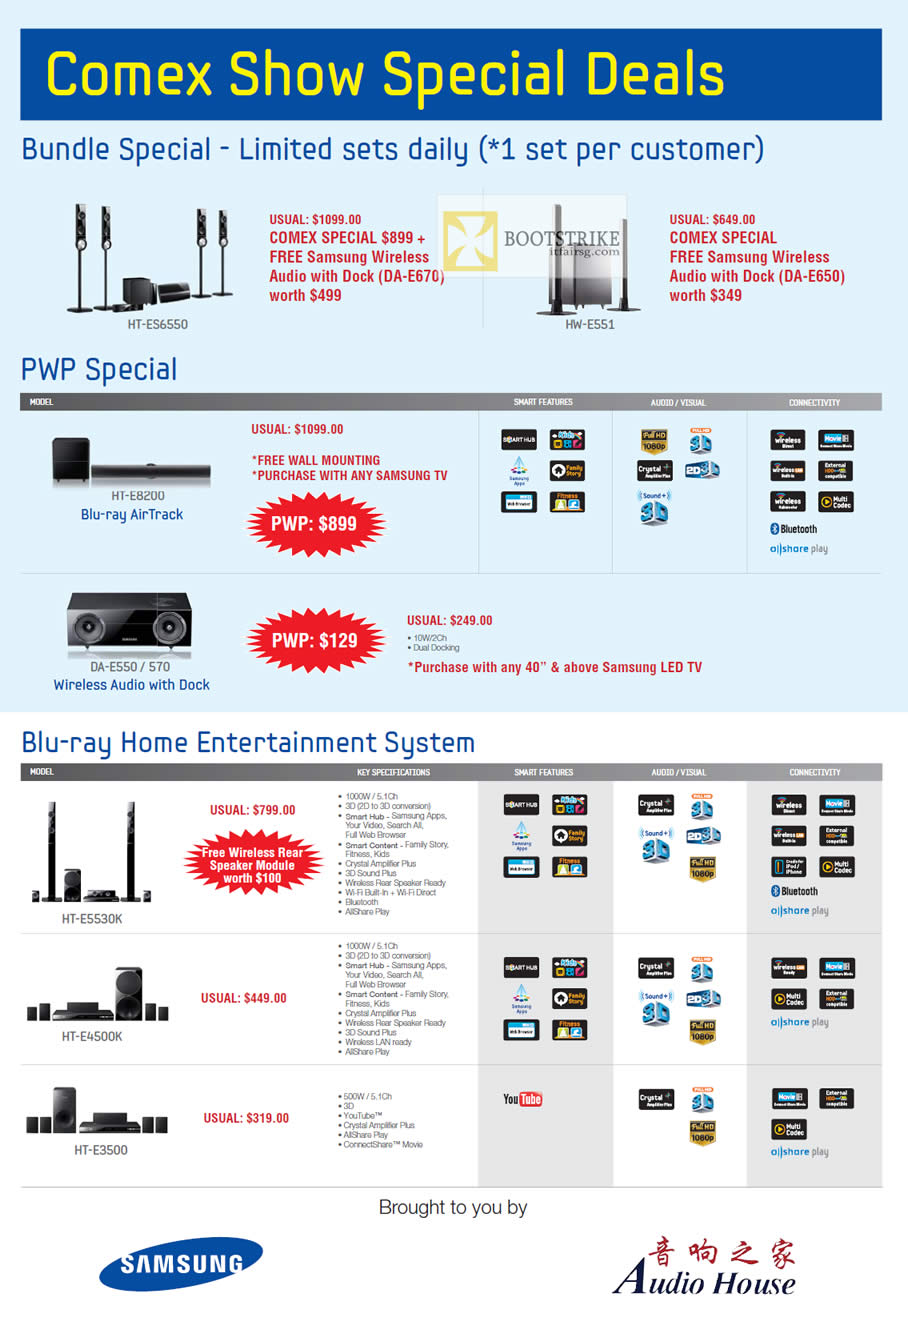 COMEX 2012 price list image brochure of Audio House Samsung Wireless Audio HT-ES6550, HW-E551, Blu-ray Air Track HT-E8200, DA-E550, DA-E570, Home Entertainment System, HT-E3500